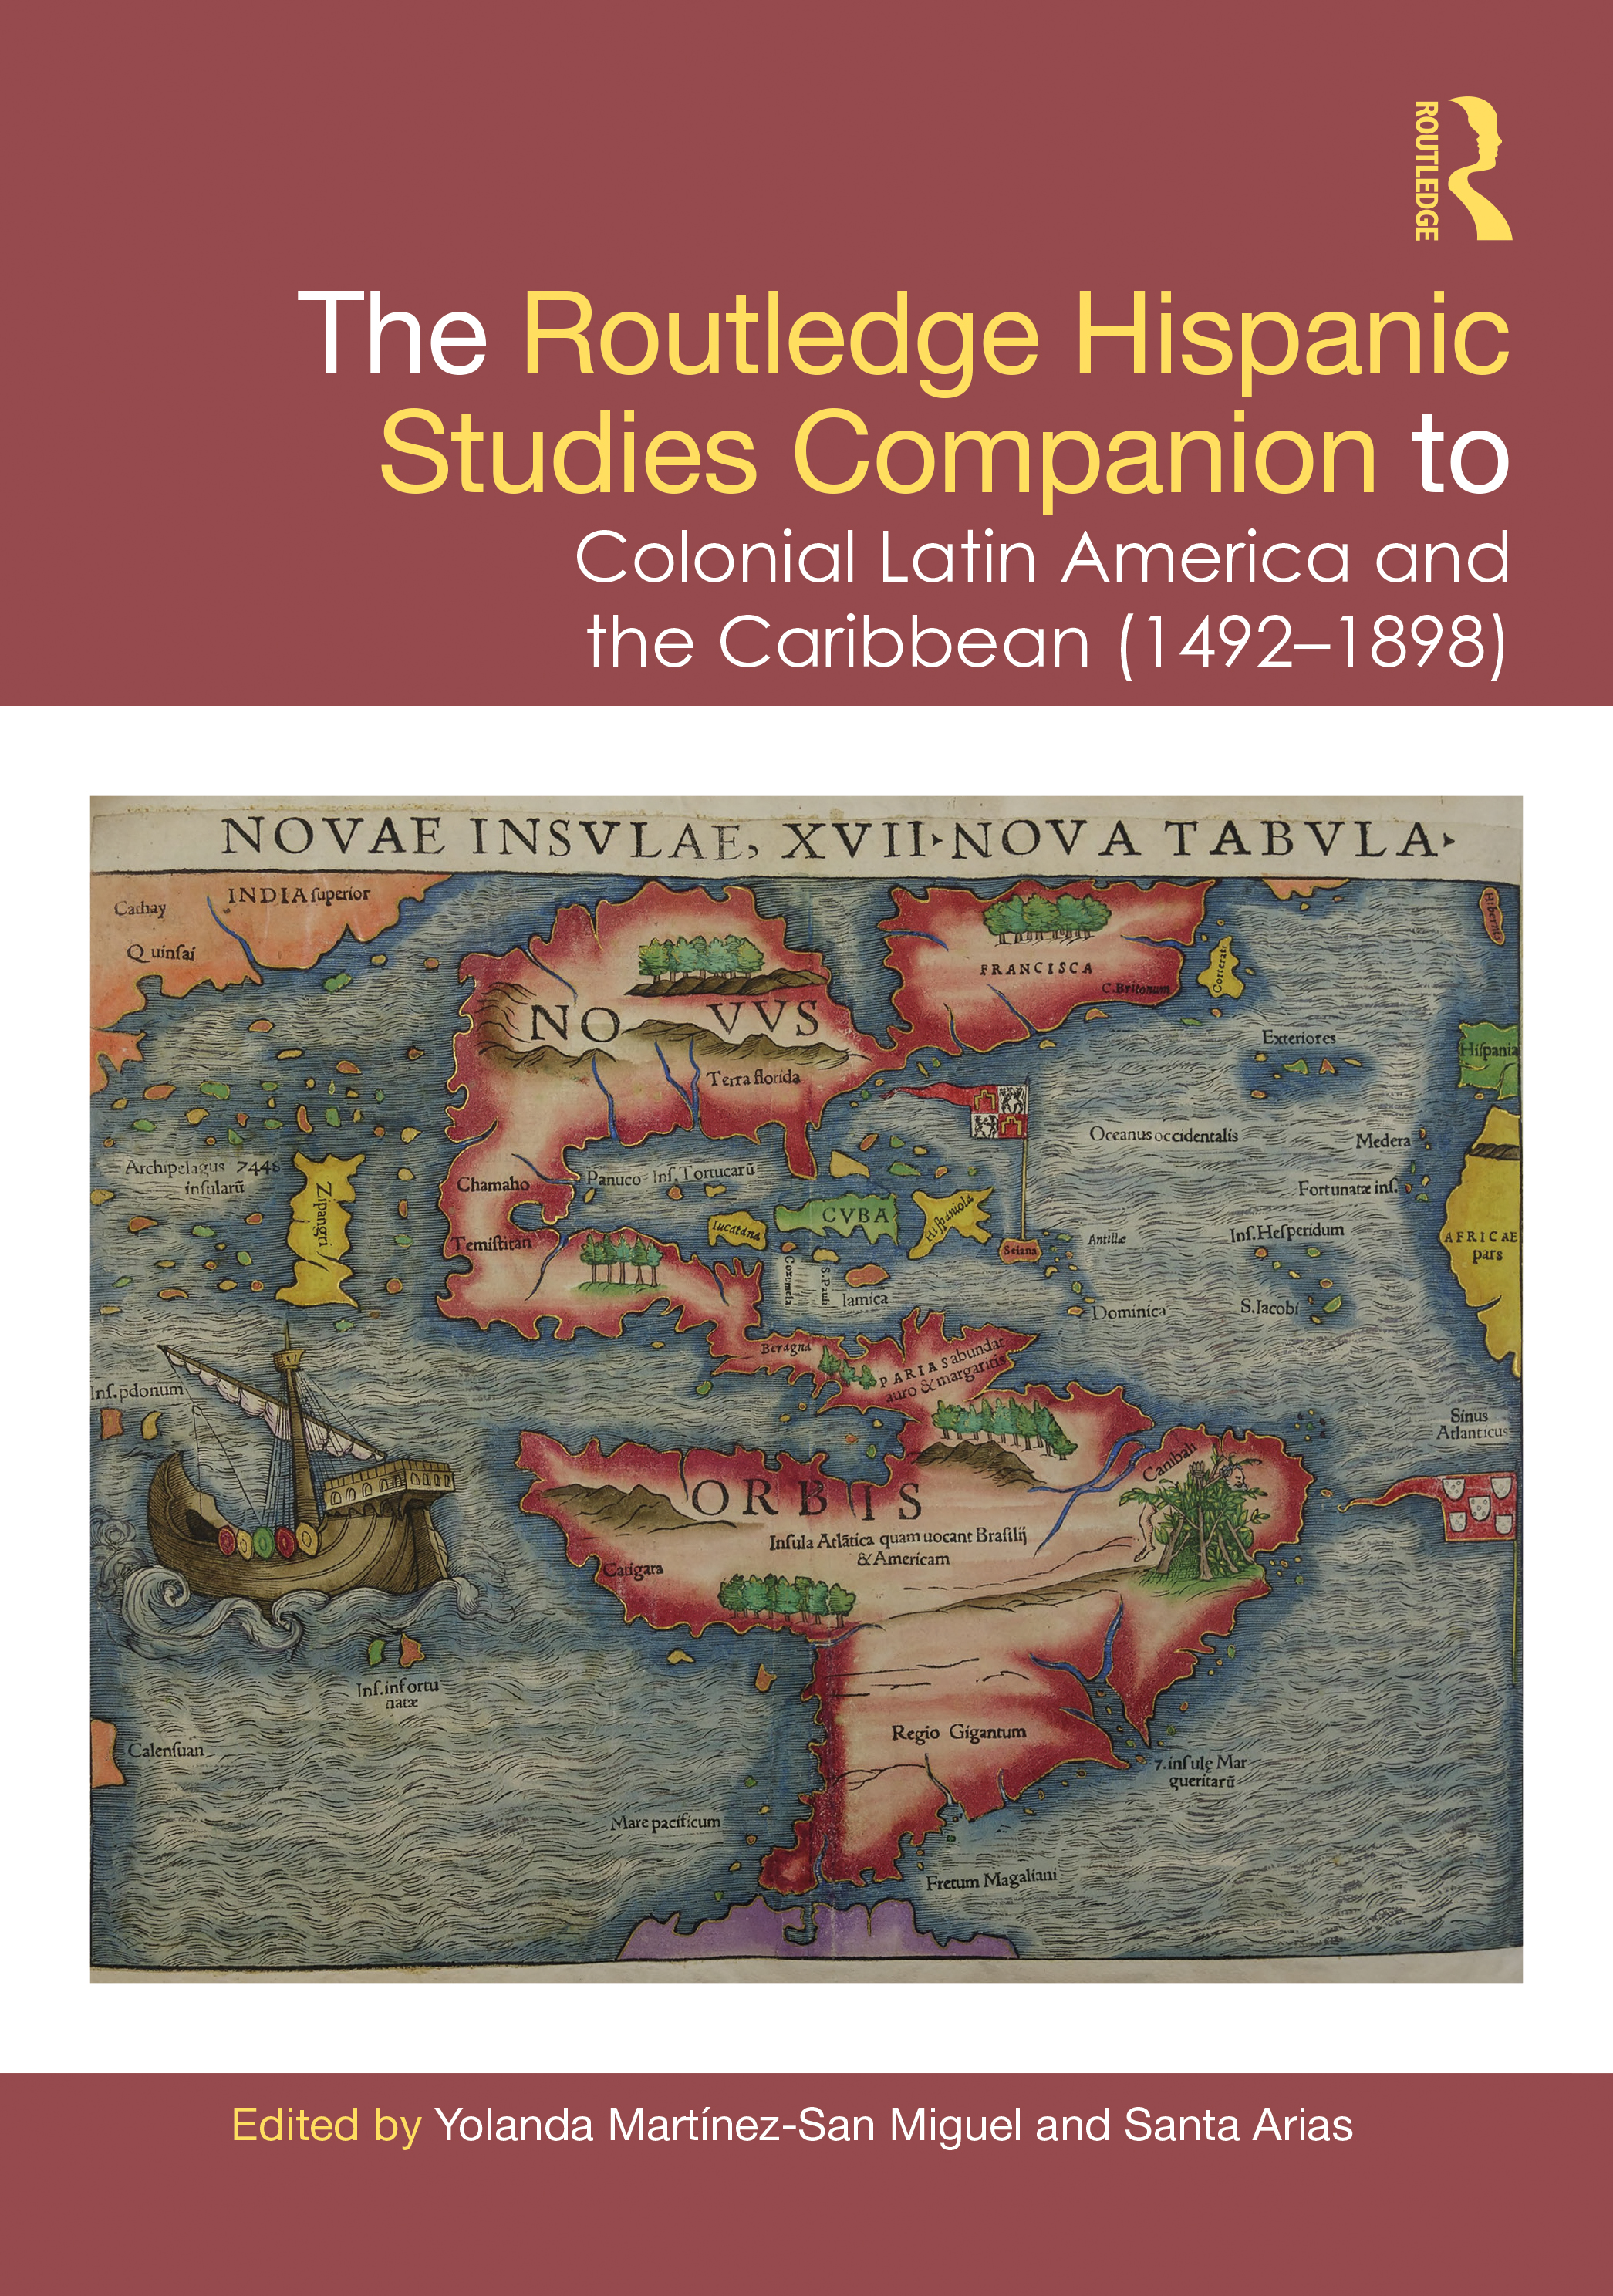 Imperial tensions, colonial contours